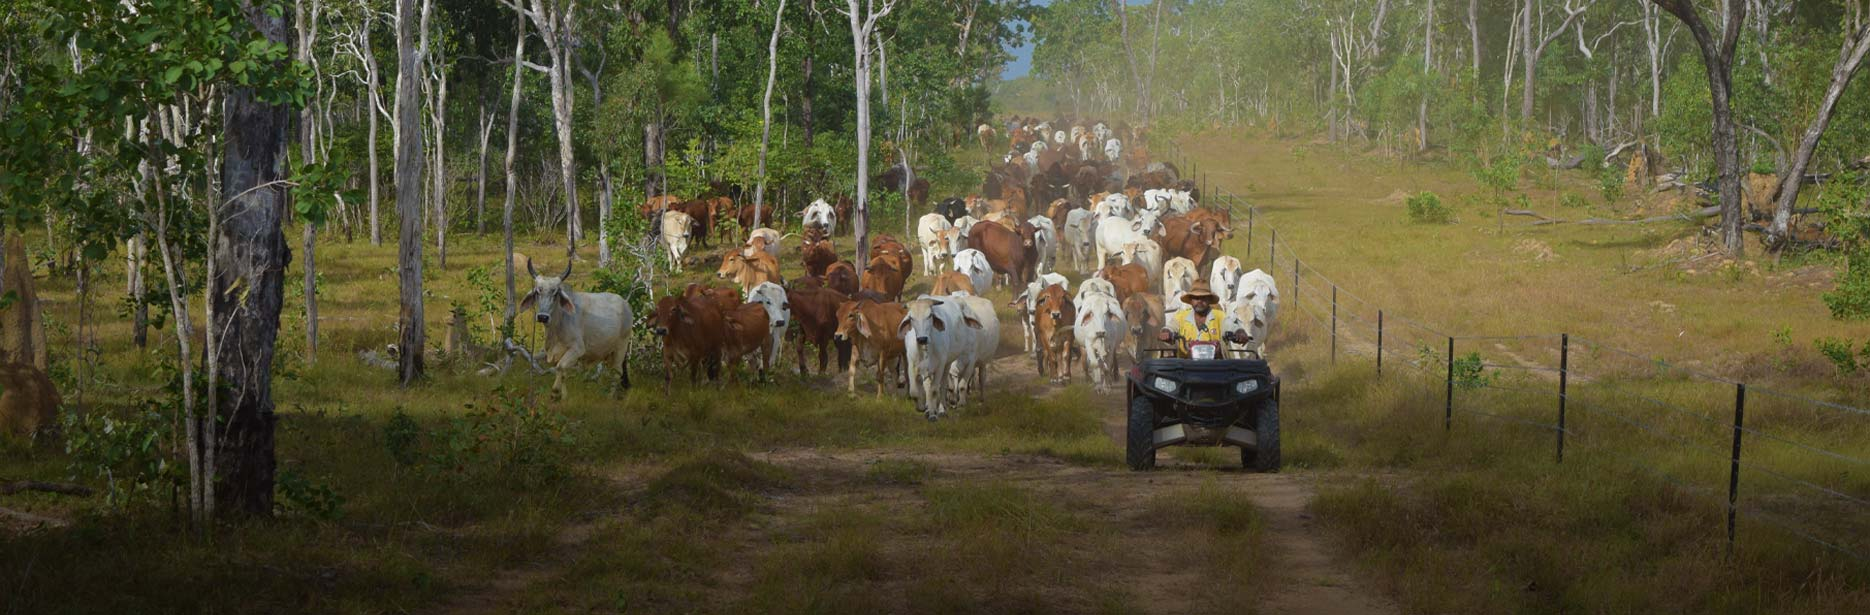 Herding cattle on the Bramwell Cattle Station in Cape York